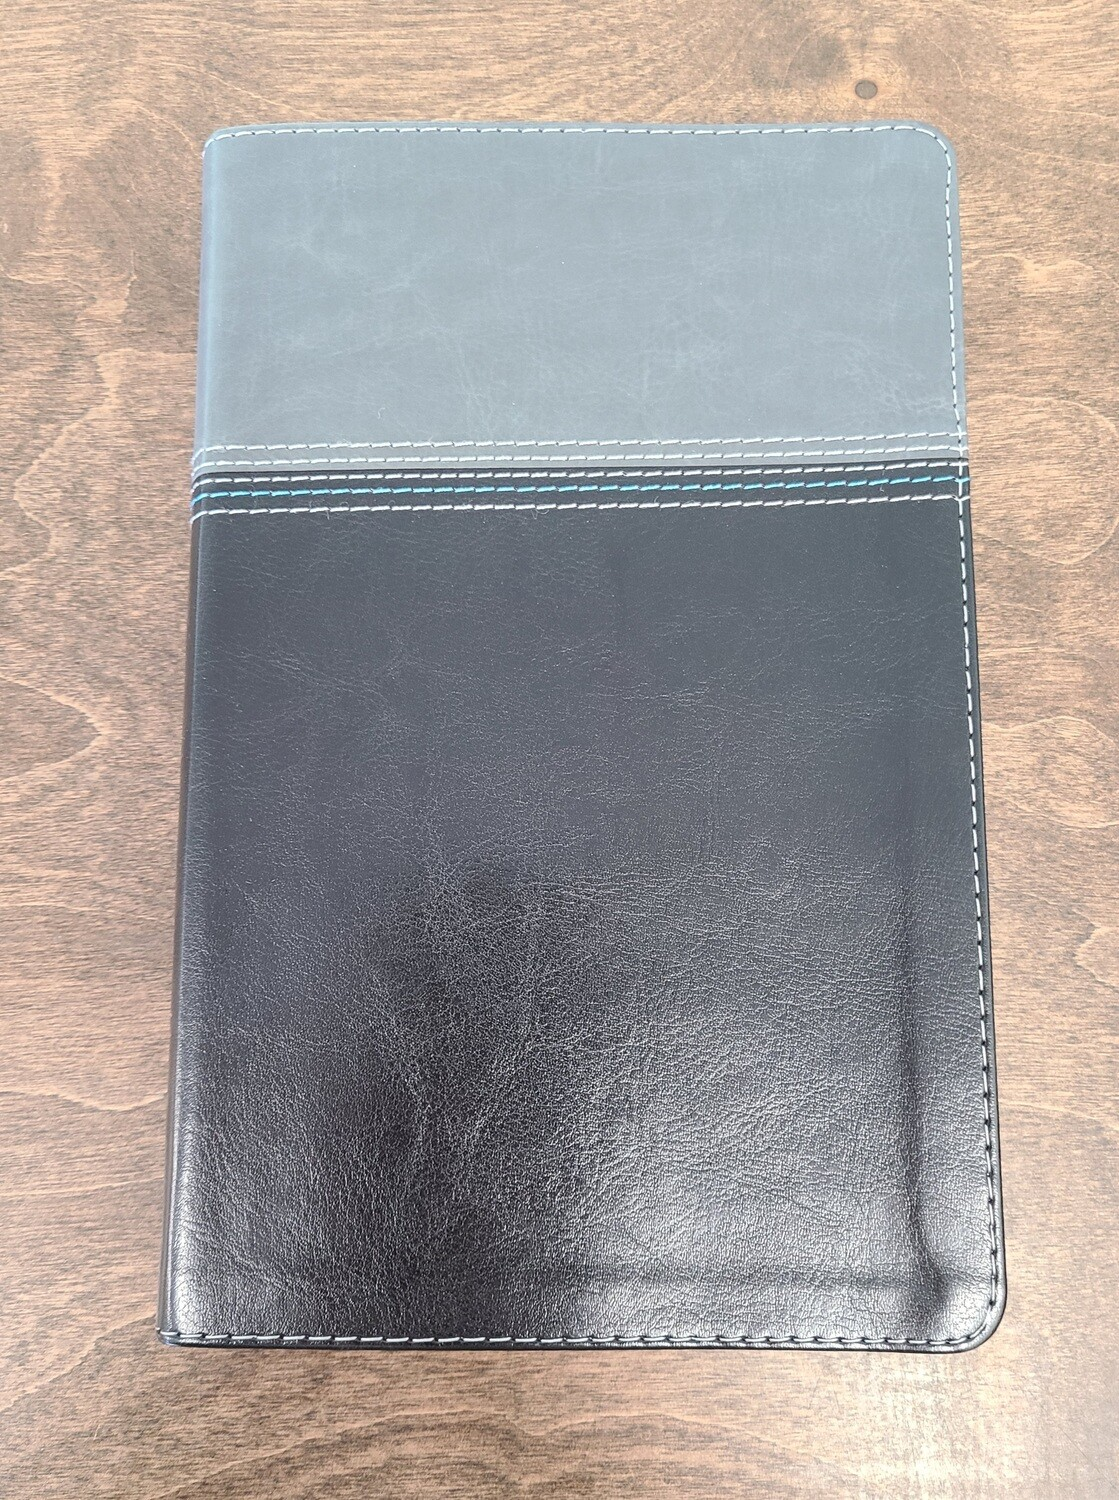 NASB Thinline Black Leather Standard Bible